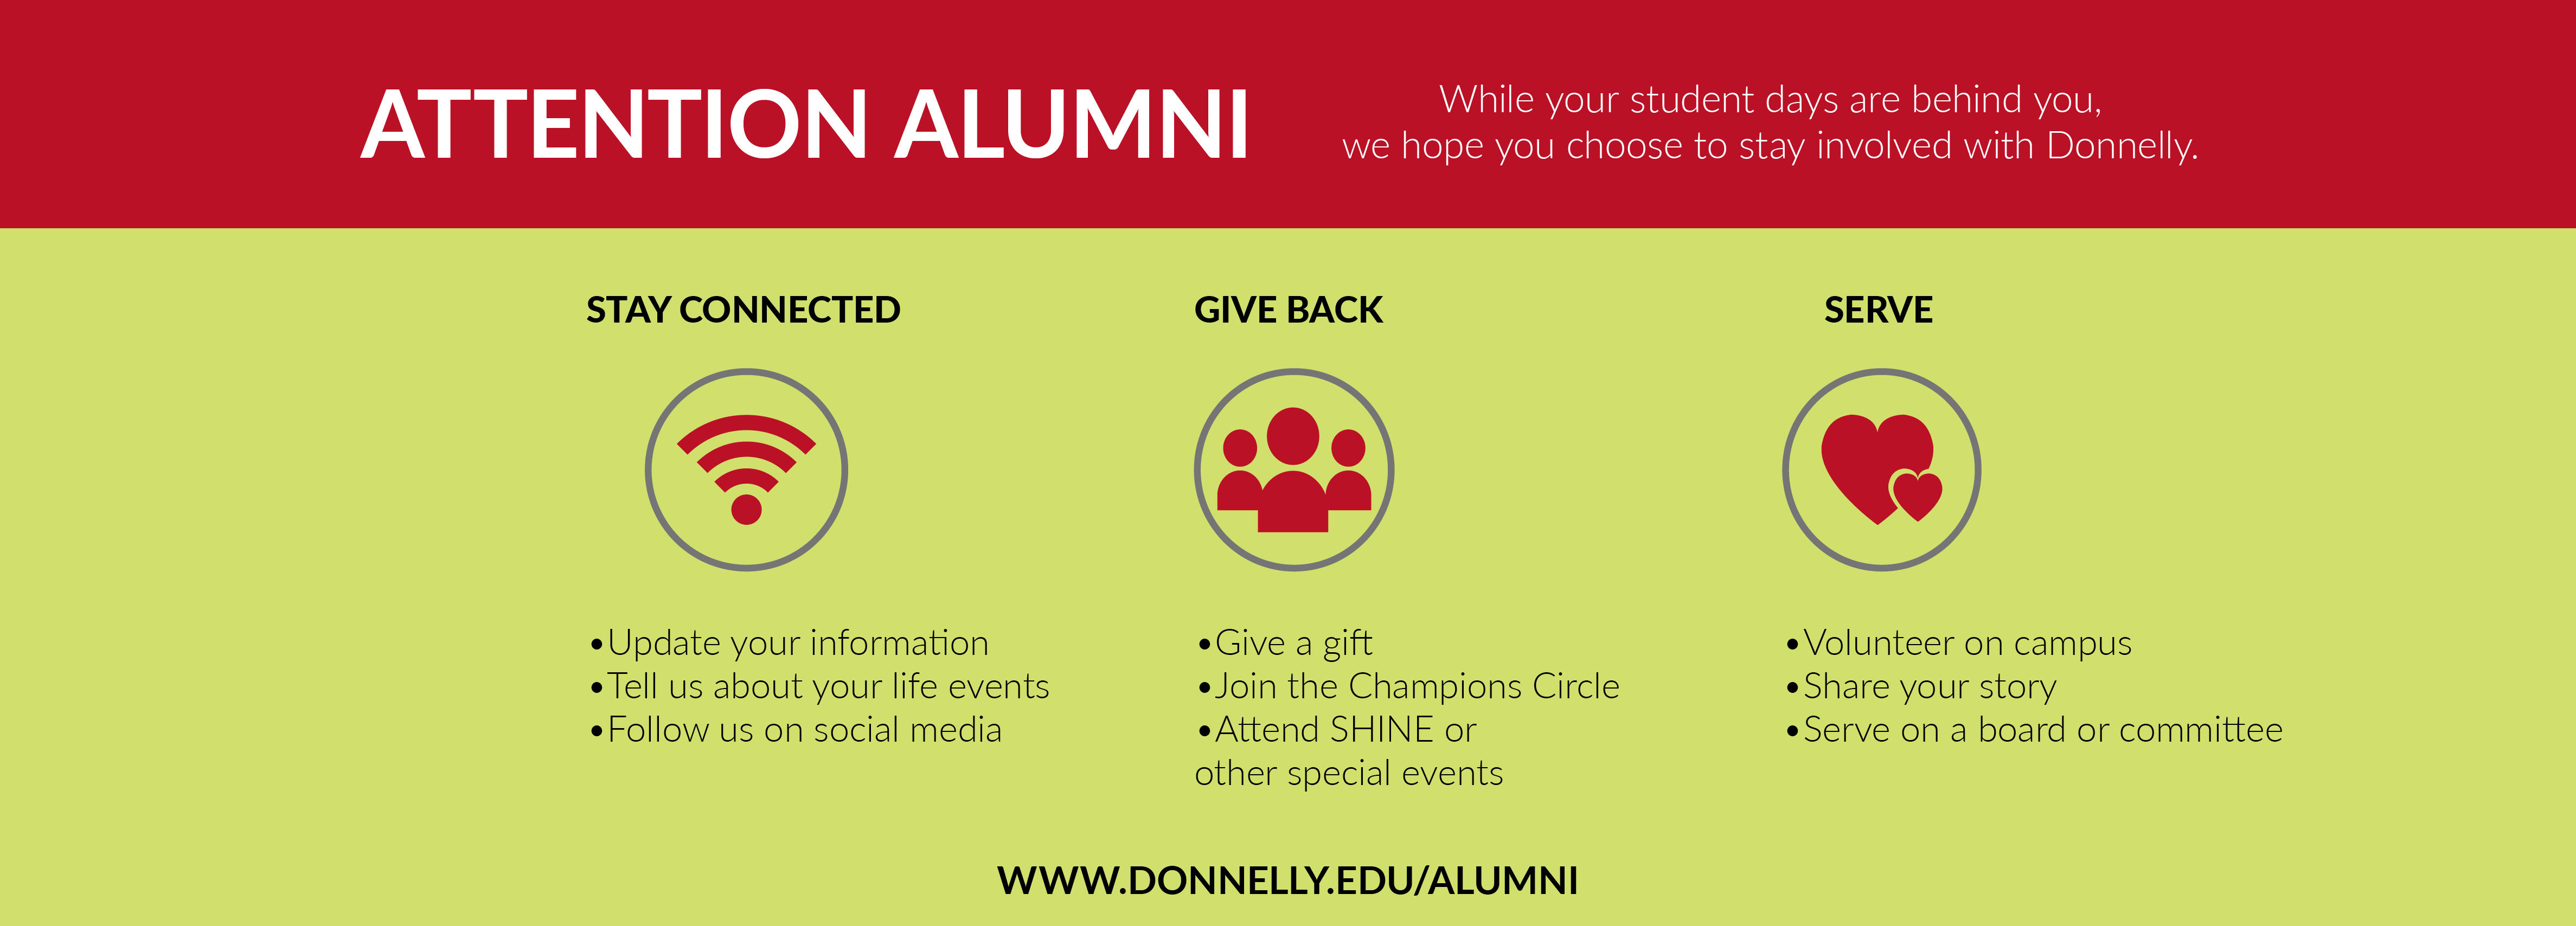 Attention Alumni: Stay Connected, Give Back, Serve